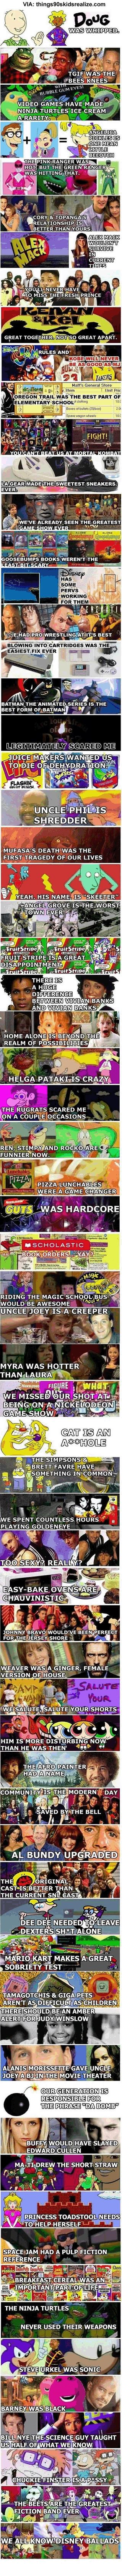 The 90's... this is awesome.